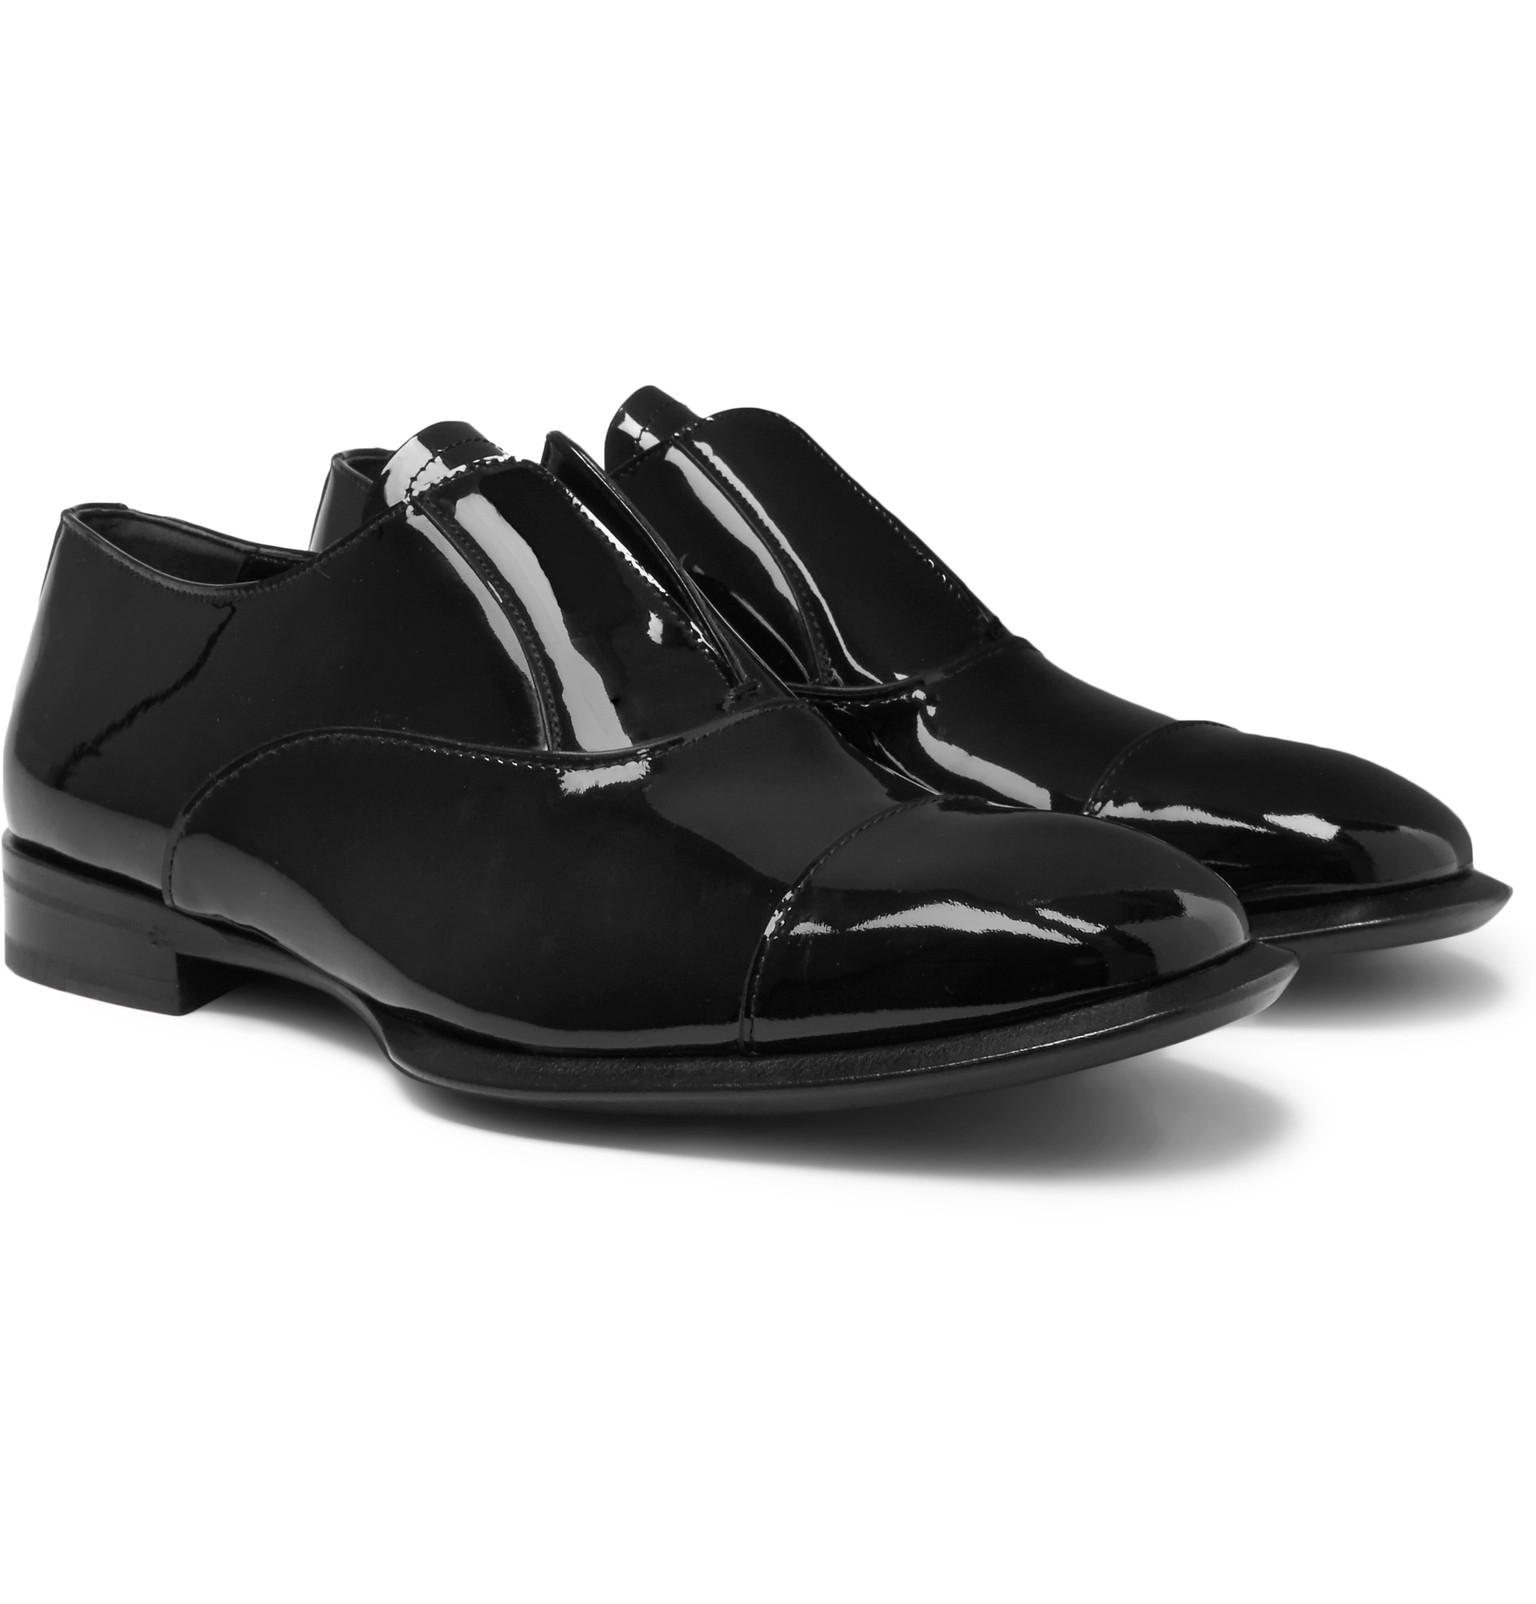 Alexander McQueen Patent Leather Dress Shoes